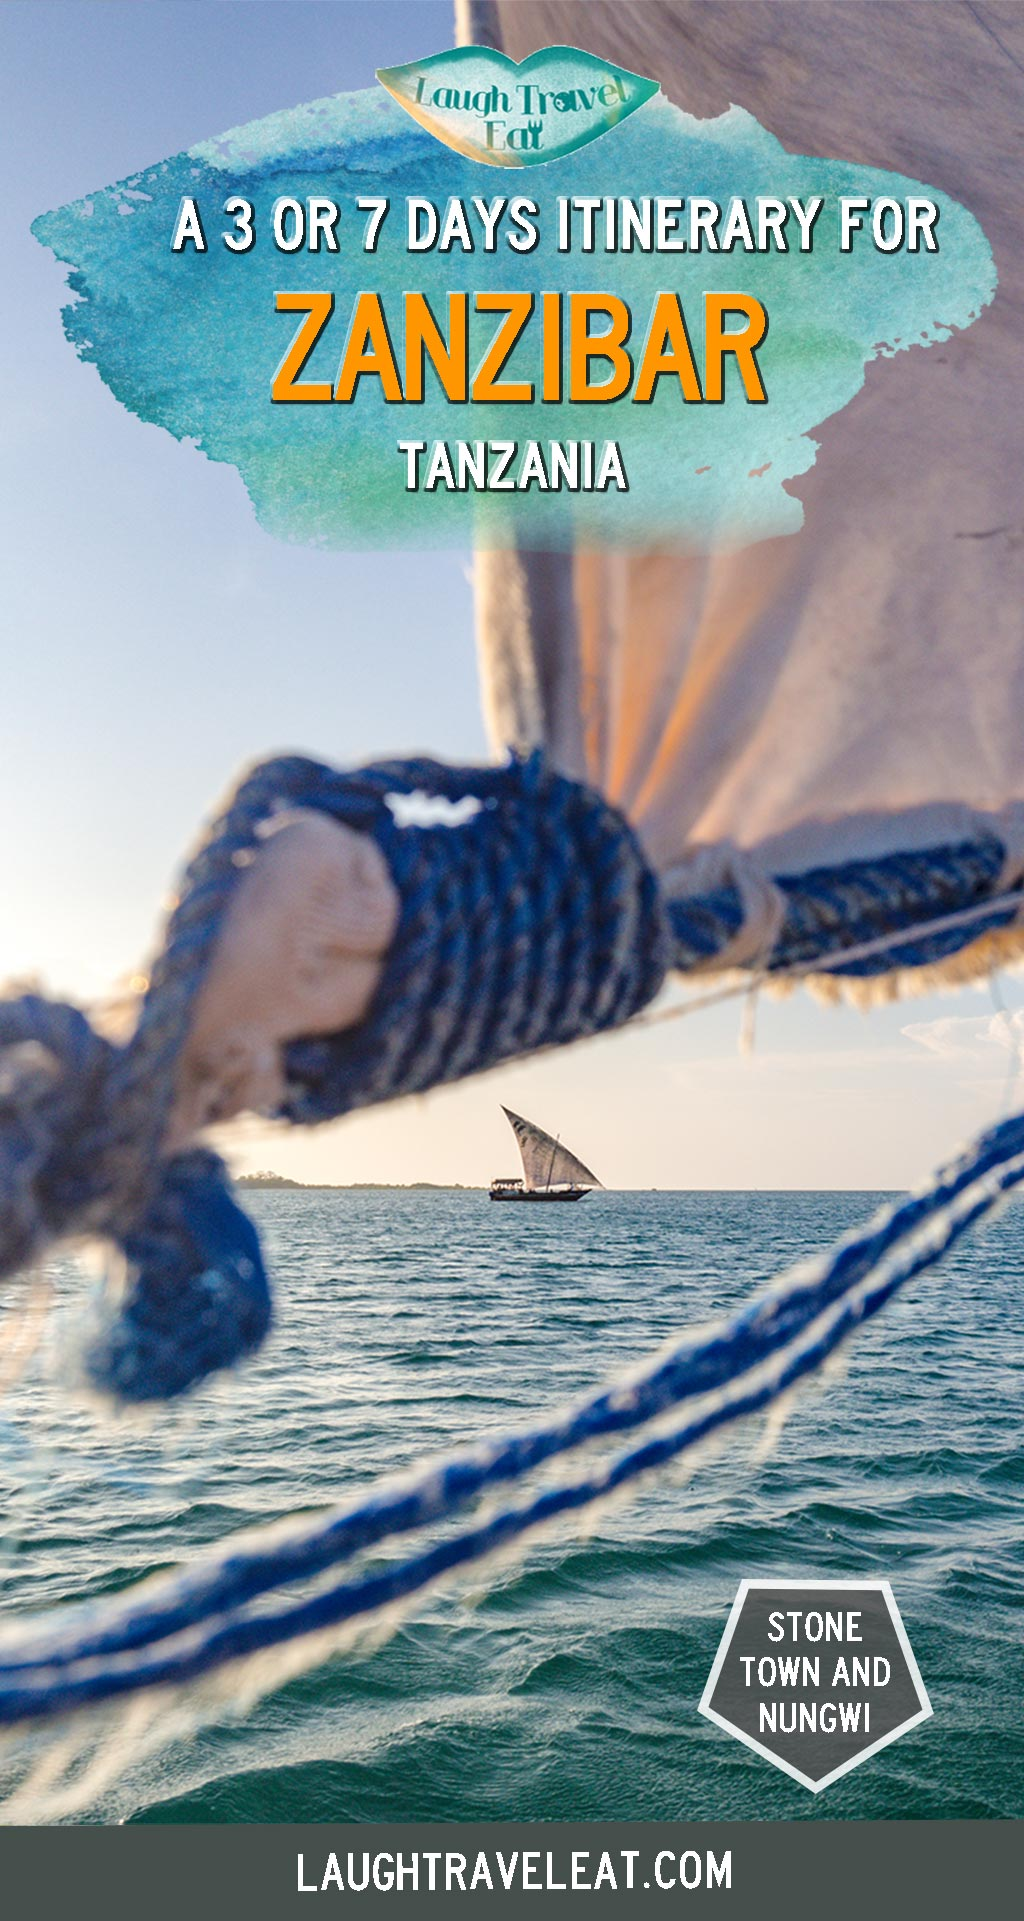 Zanzibar has long been an island of spice and trade even before becoming part of Tanzania. Most itinerary for Tanzania will include this island, not only because of its history but because of its beautiful beaches. Whether you are looking to spend a few days in Zanzibar or a week to relax and unwind, I've got some suggestions for you: #Zanzibar #Tanzania #Afirca